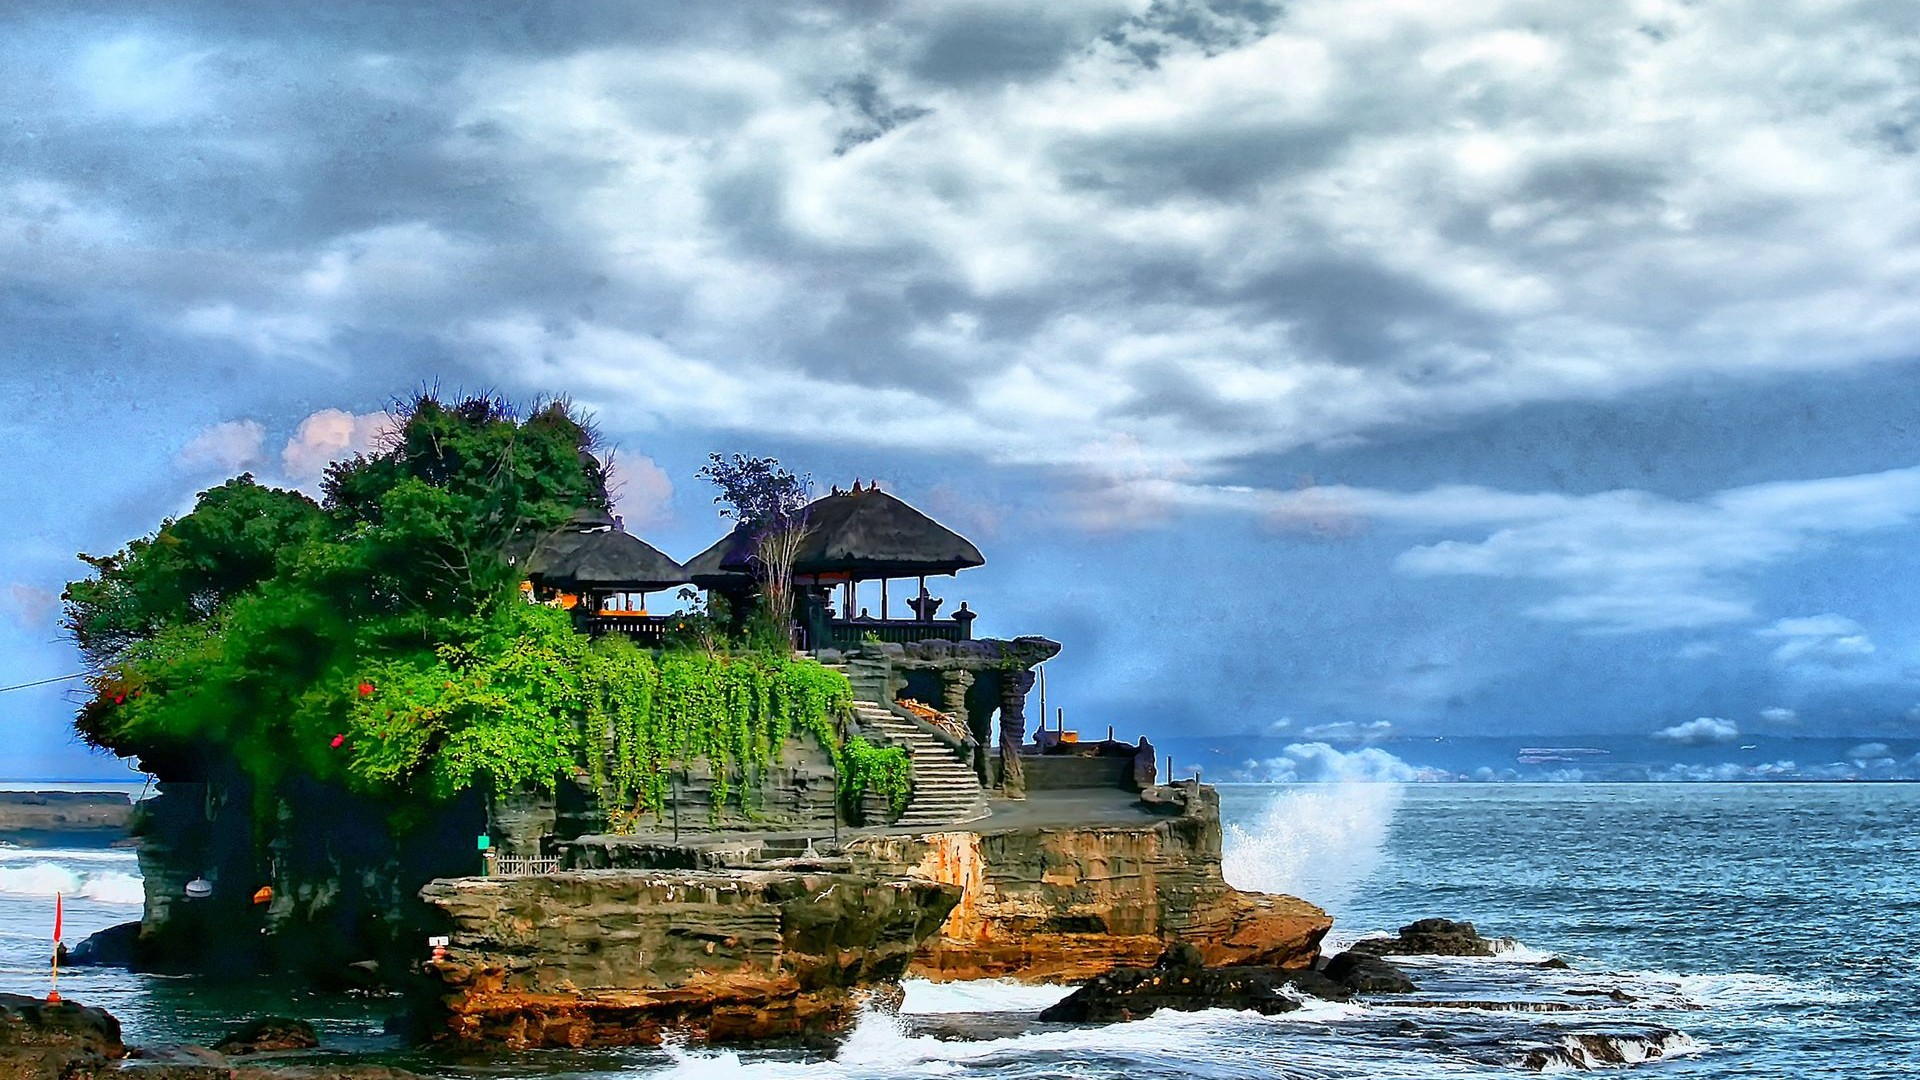 Bali Wallpaper Hd Background Download Desktop Iphones